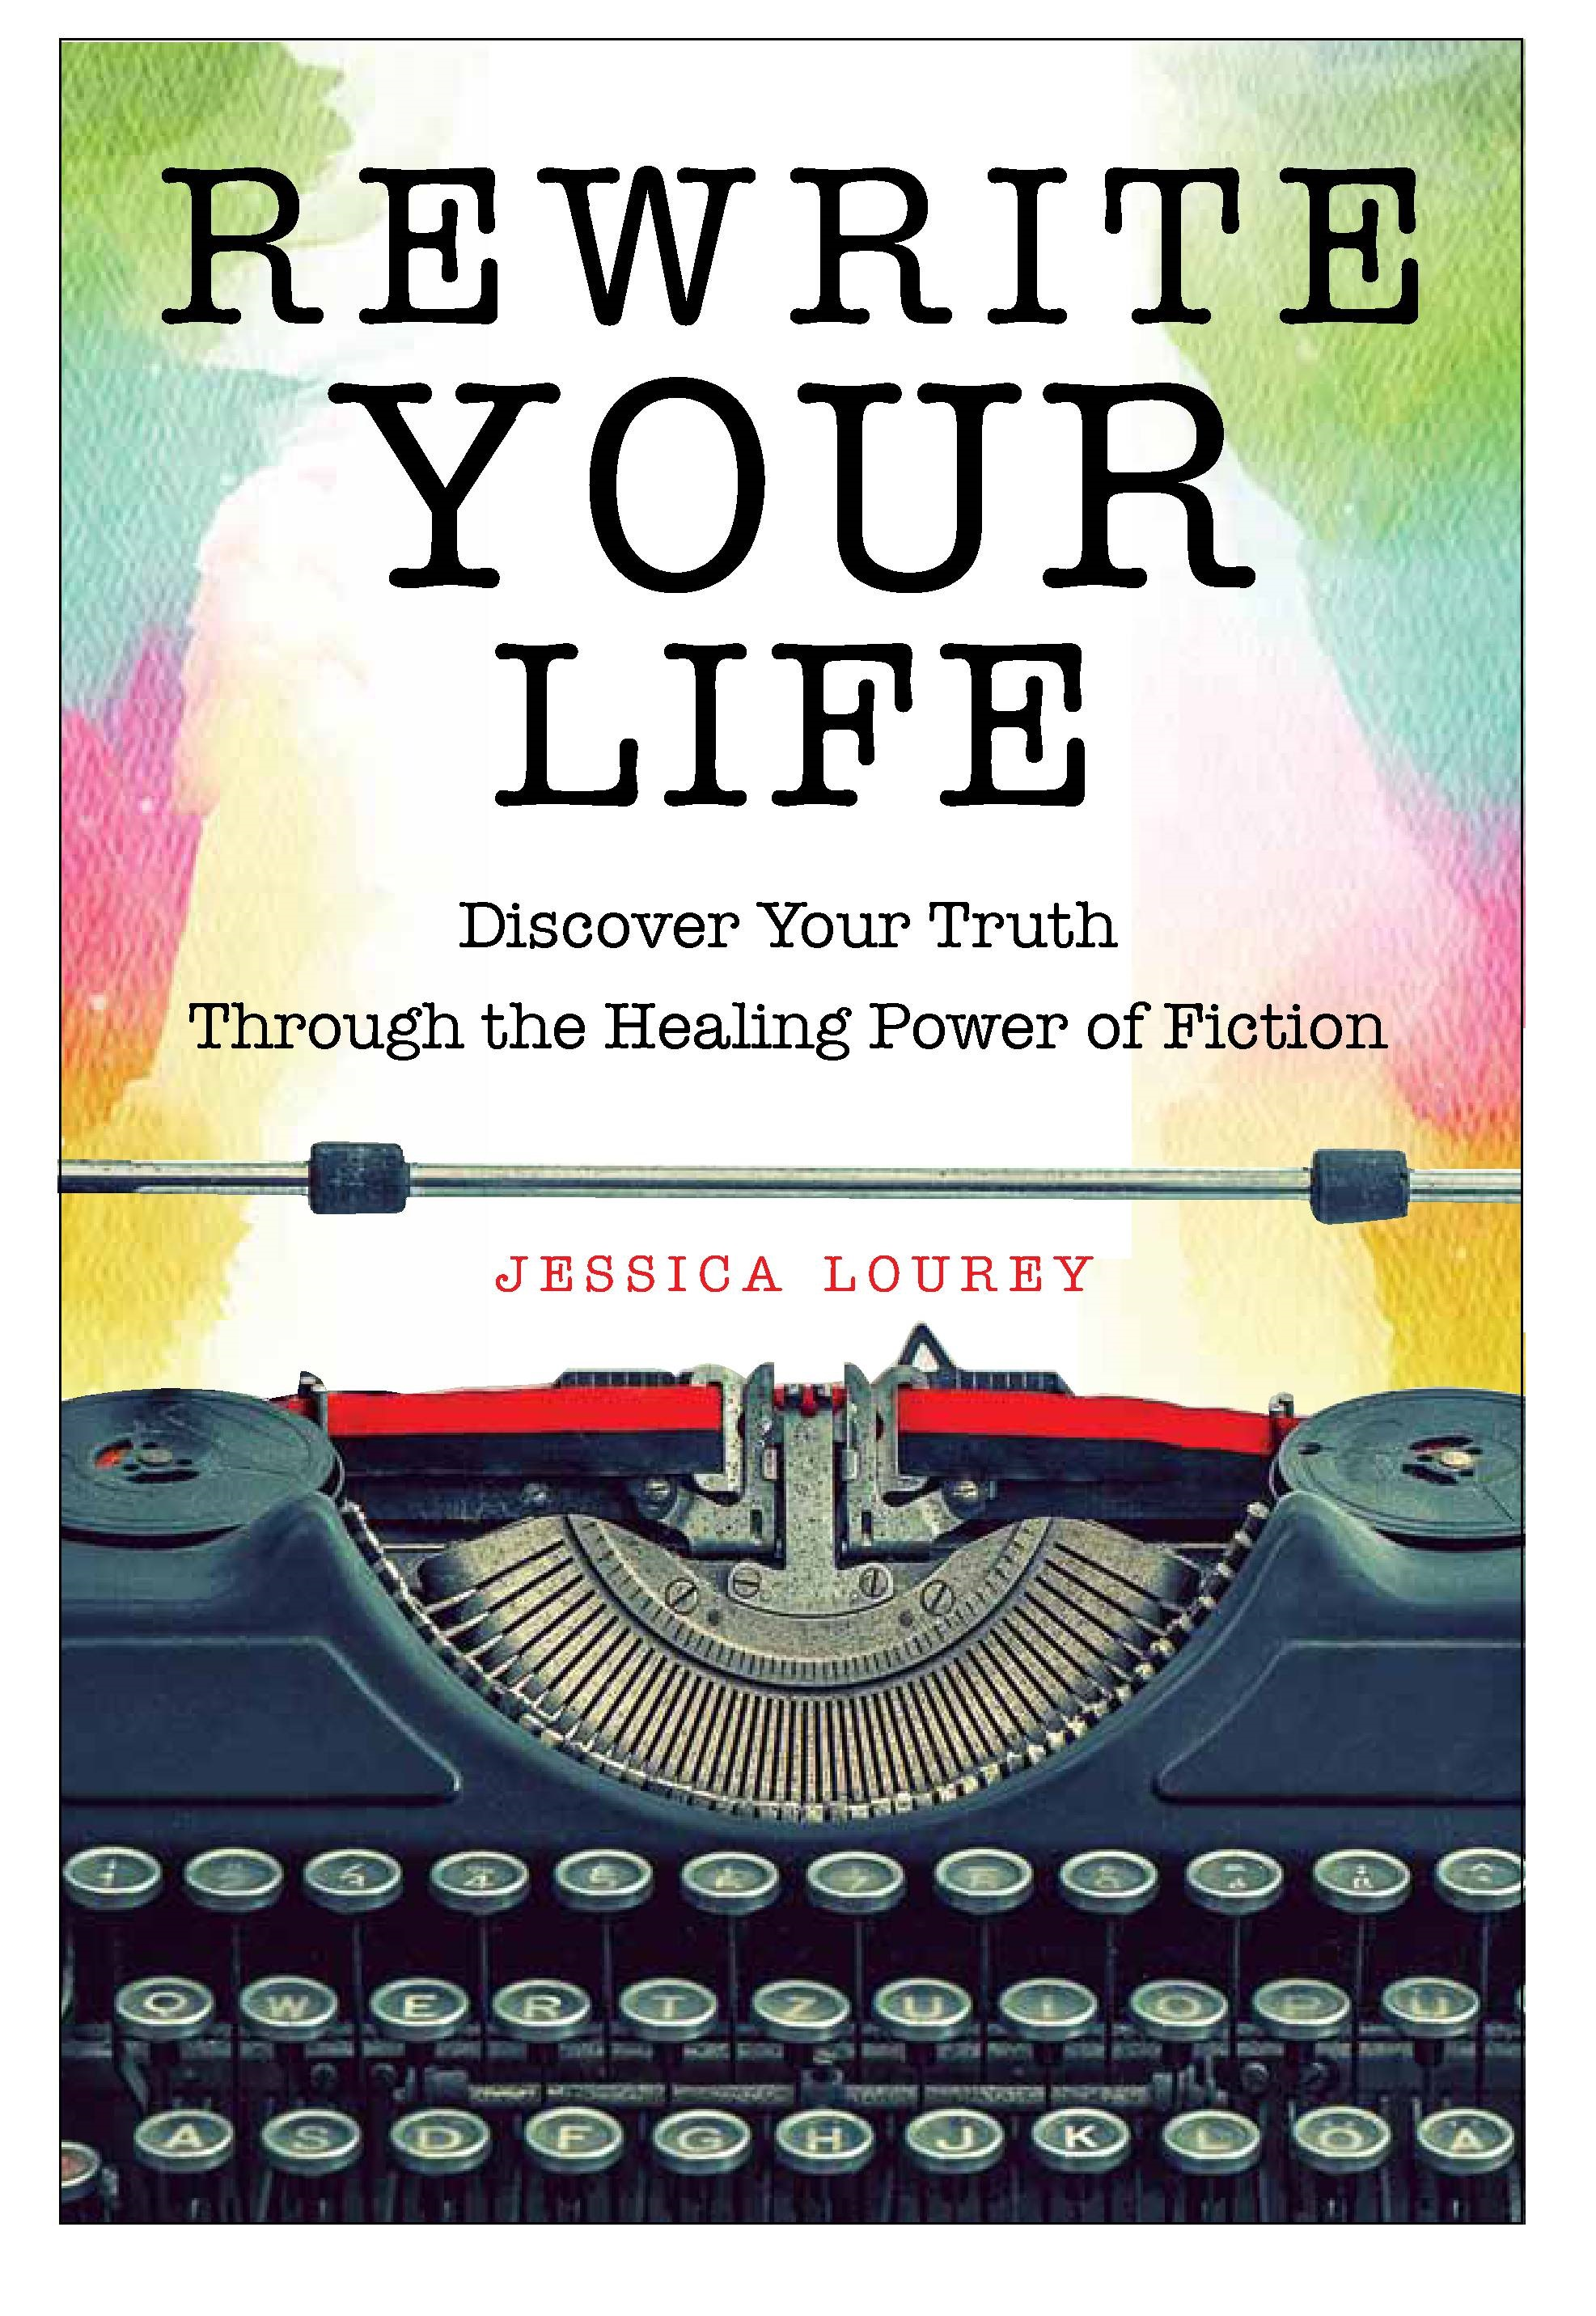 Rewrite Your Life: Discover Your Truth Through the Healing Power of Fiction, by Jessica Lourey